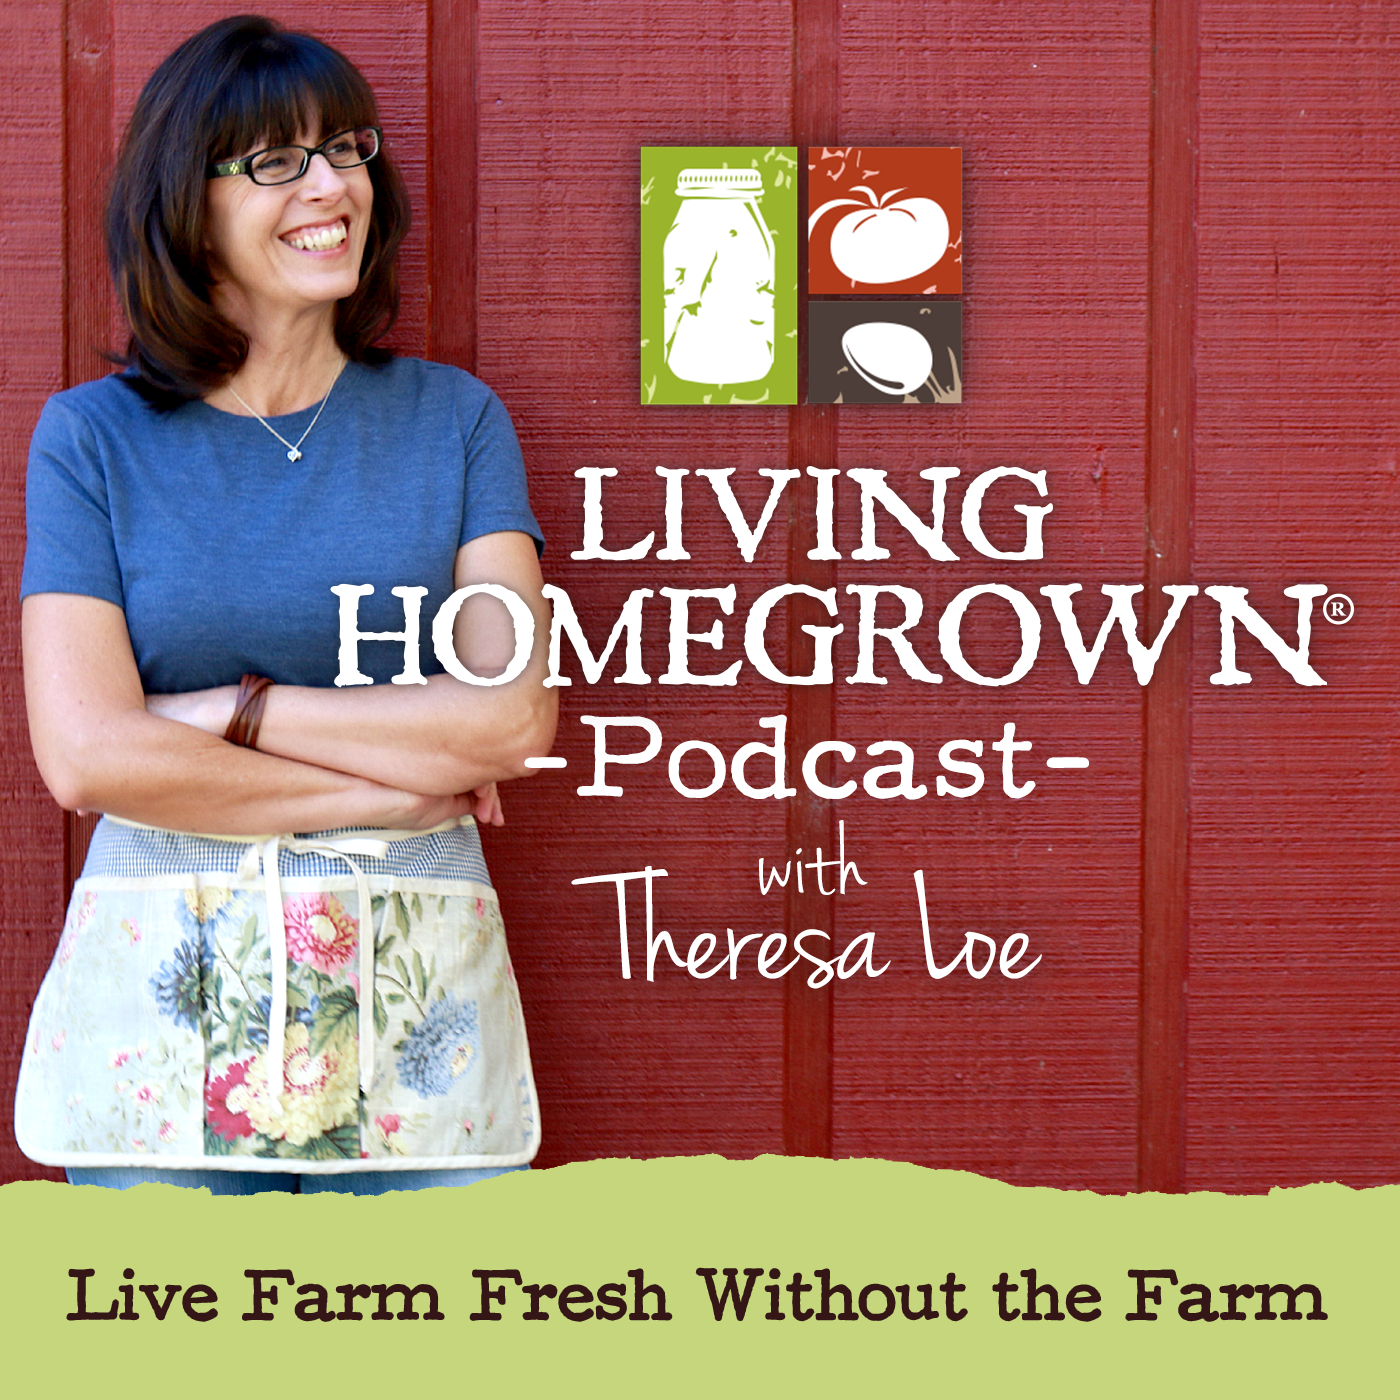 Living Homegrown Podcast